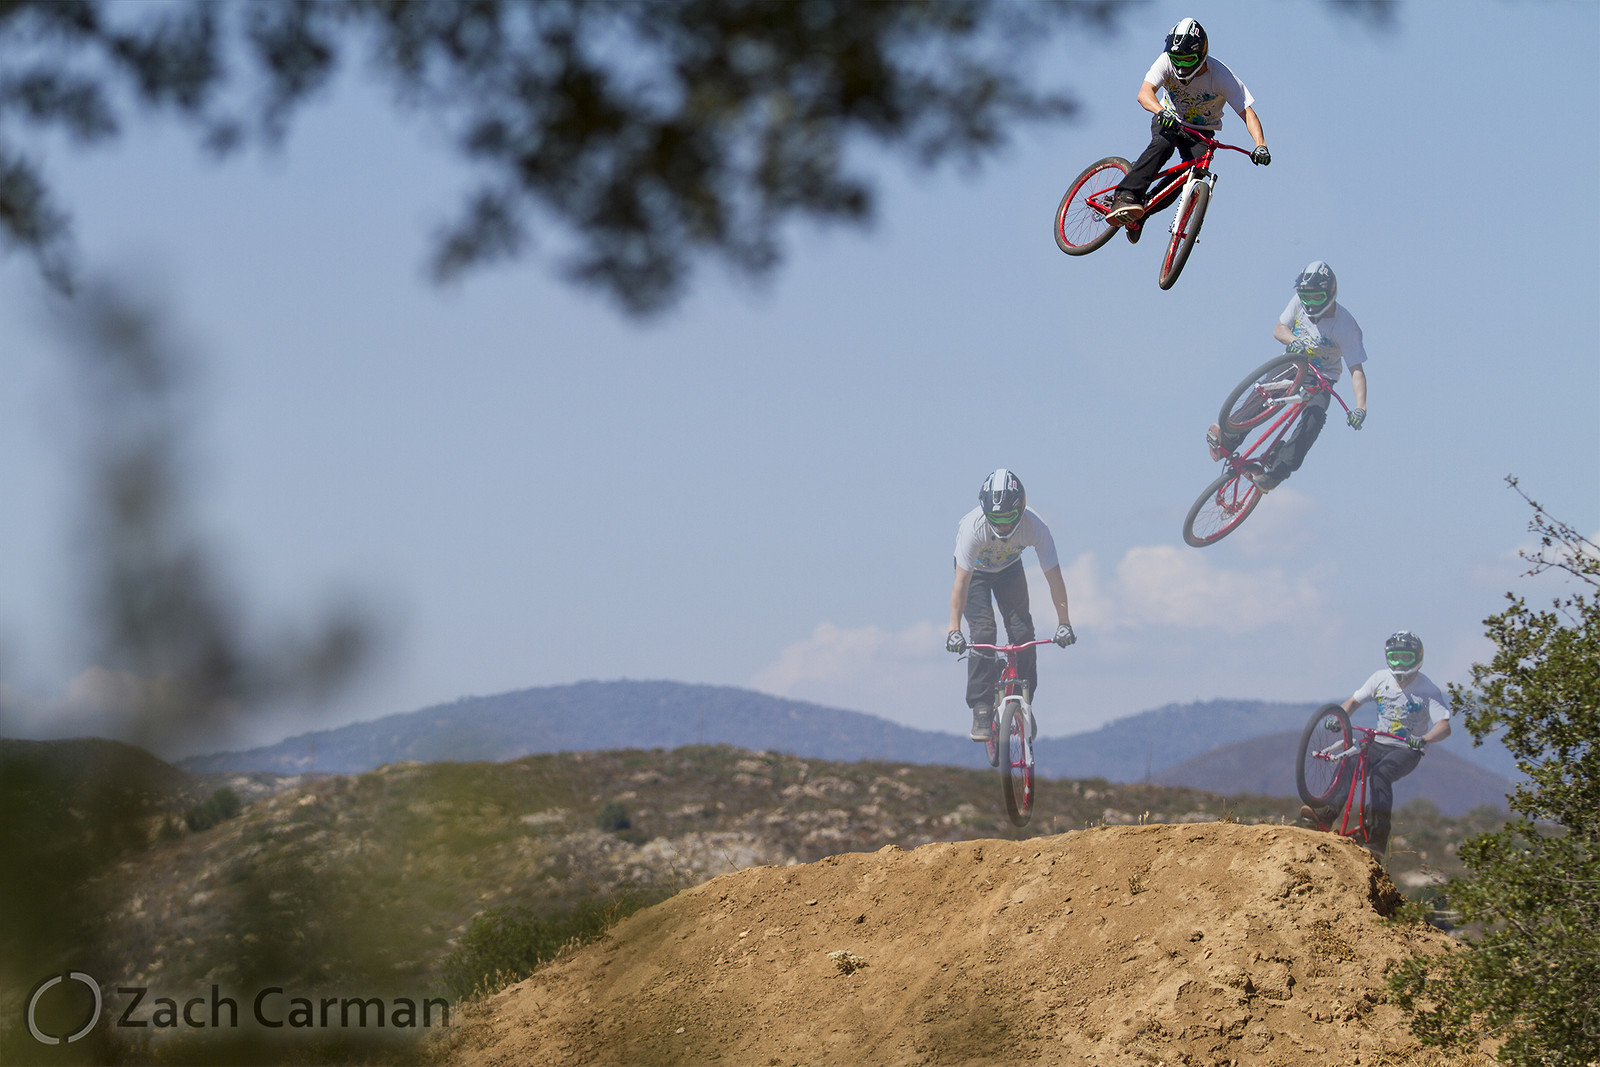 James Visser warming up - Captures by Carman - Mountain Biking Pictures - Vital MTB